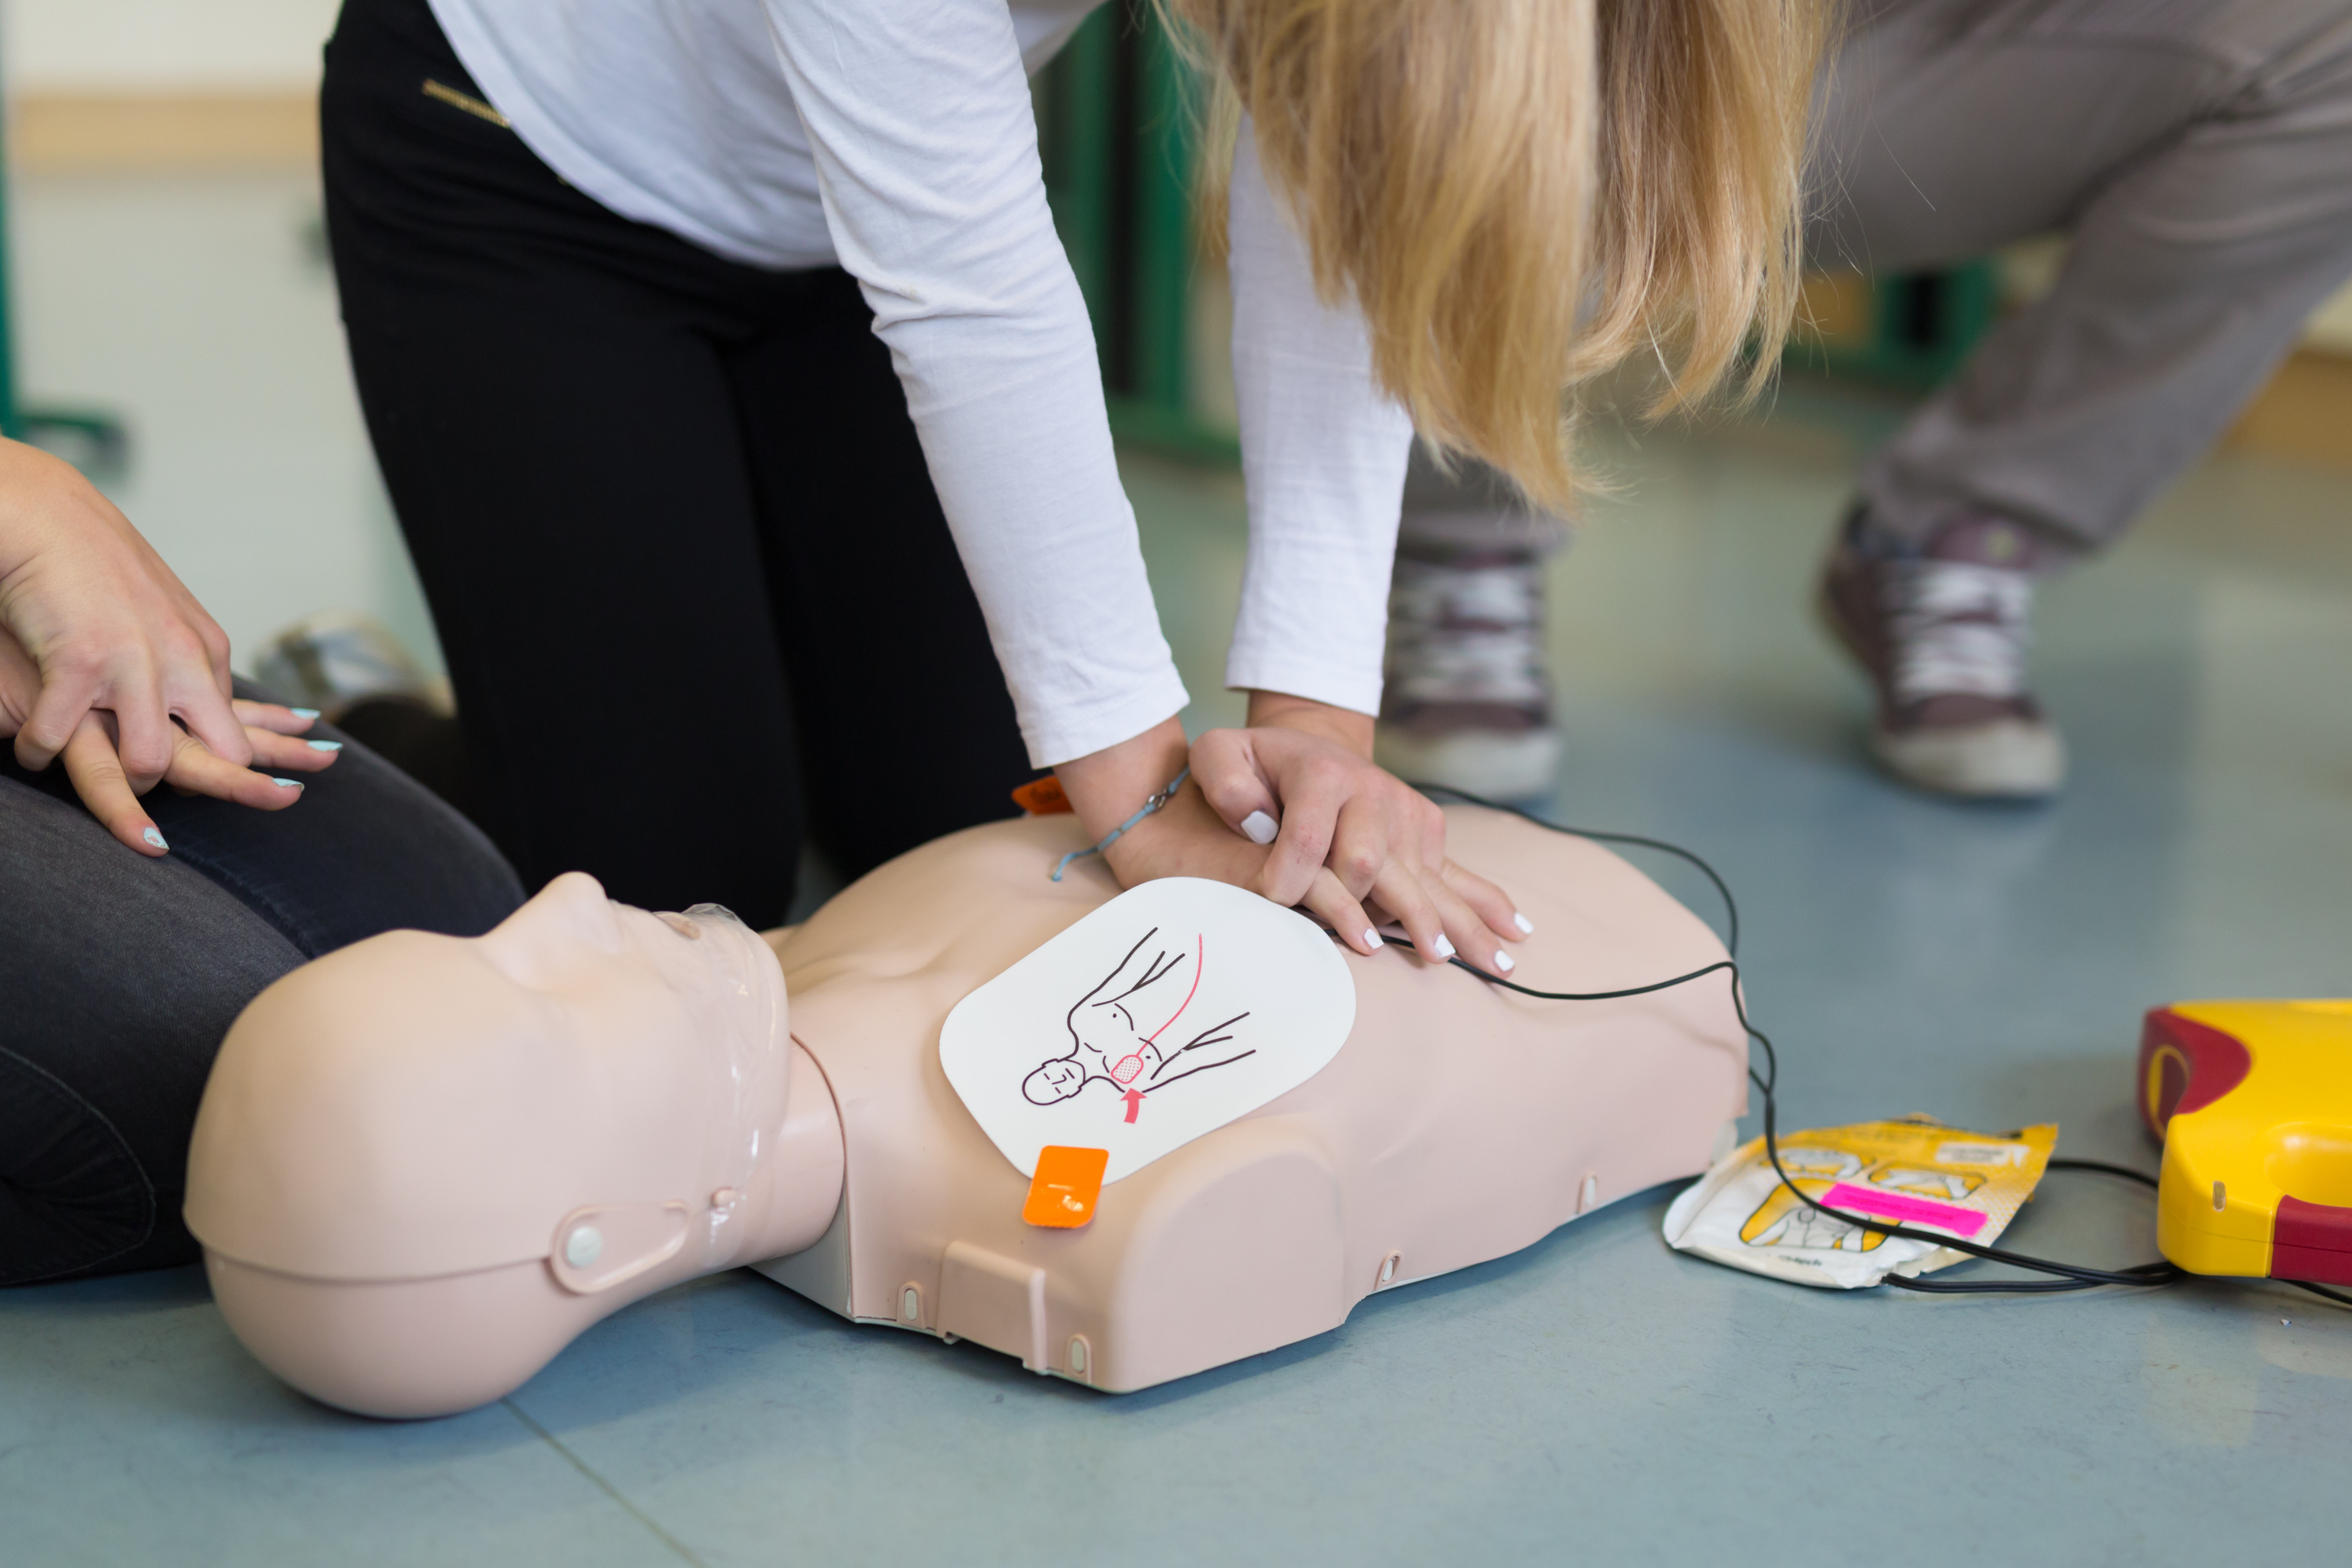 First aid cardiopulmonary resuscitation course using automated external defibrillator device, AED.